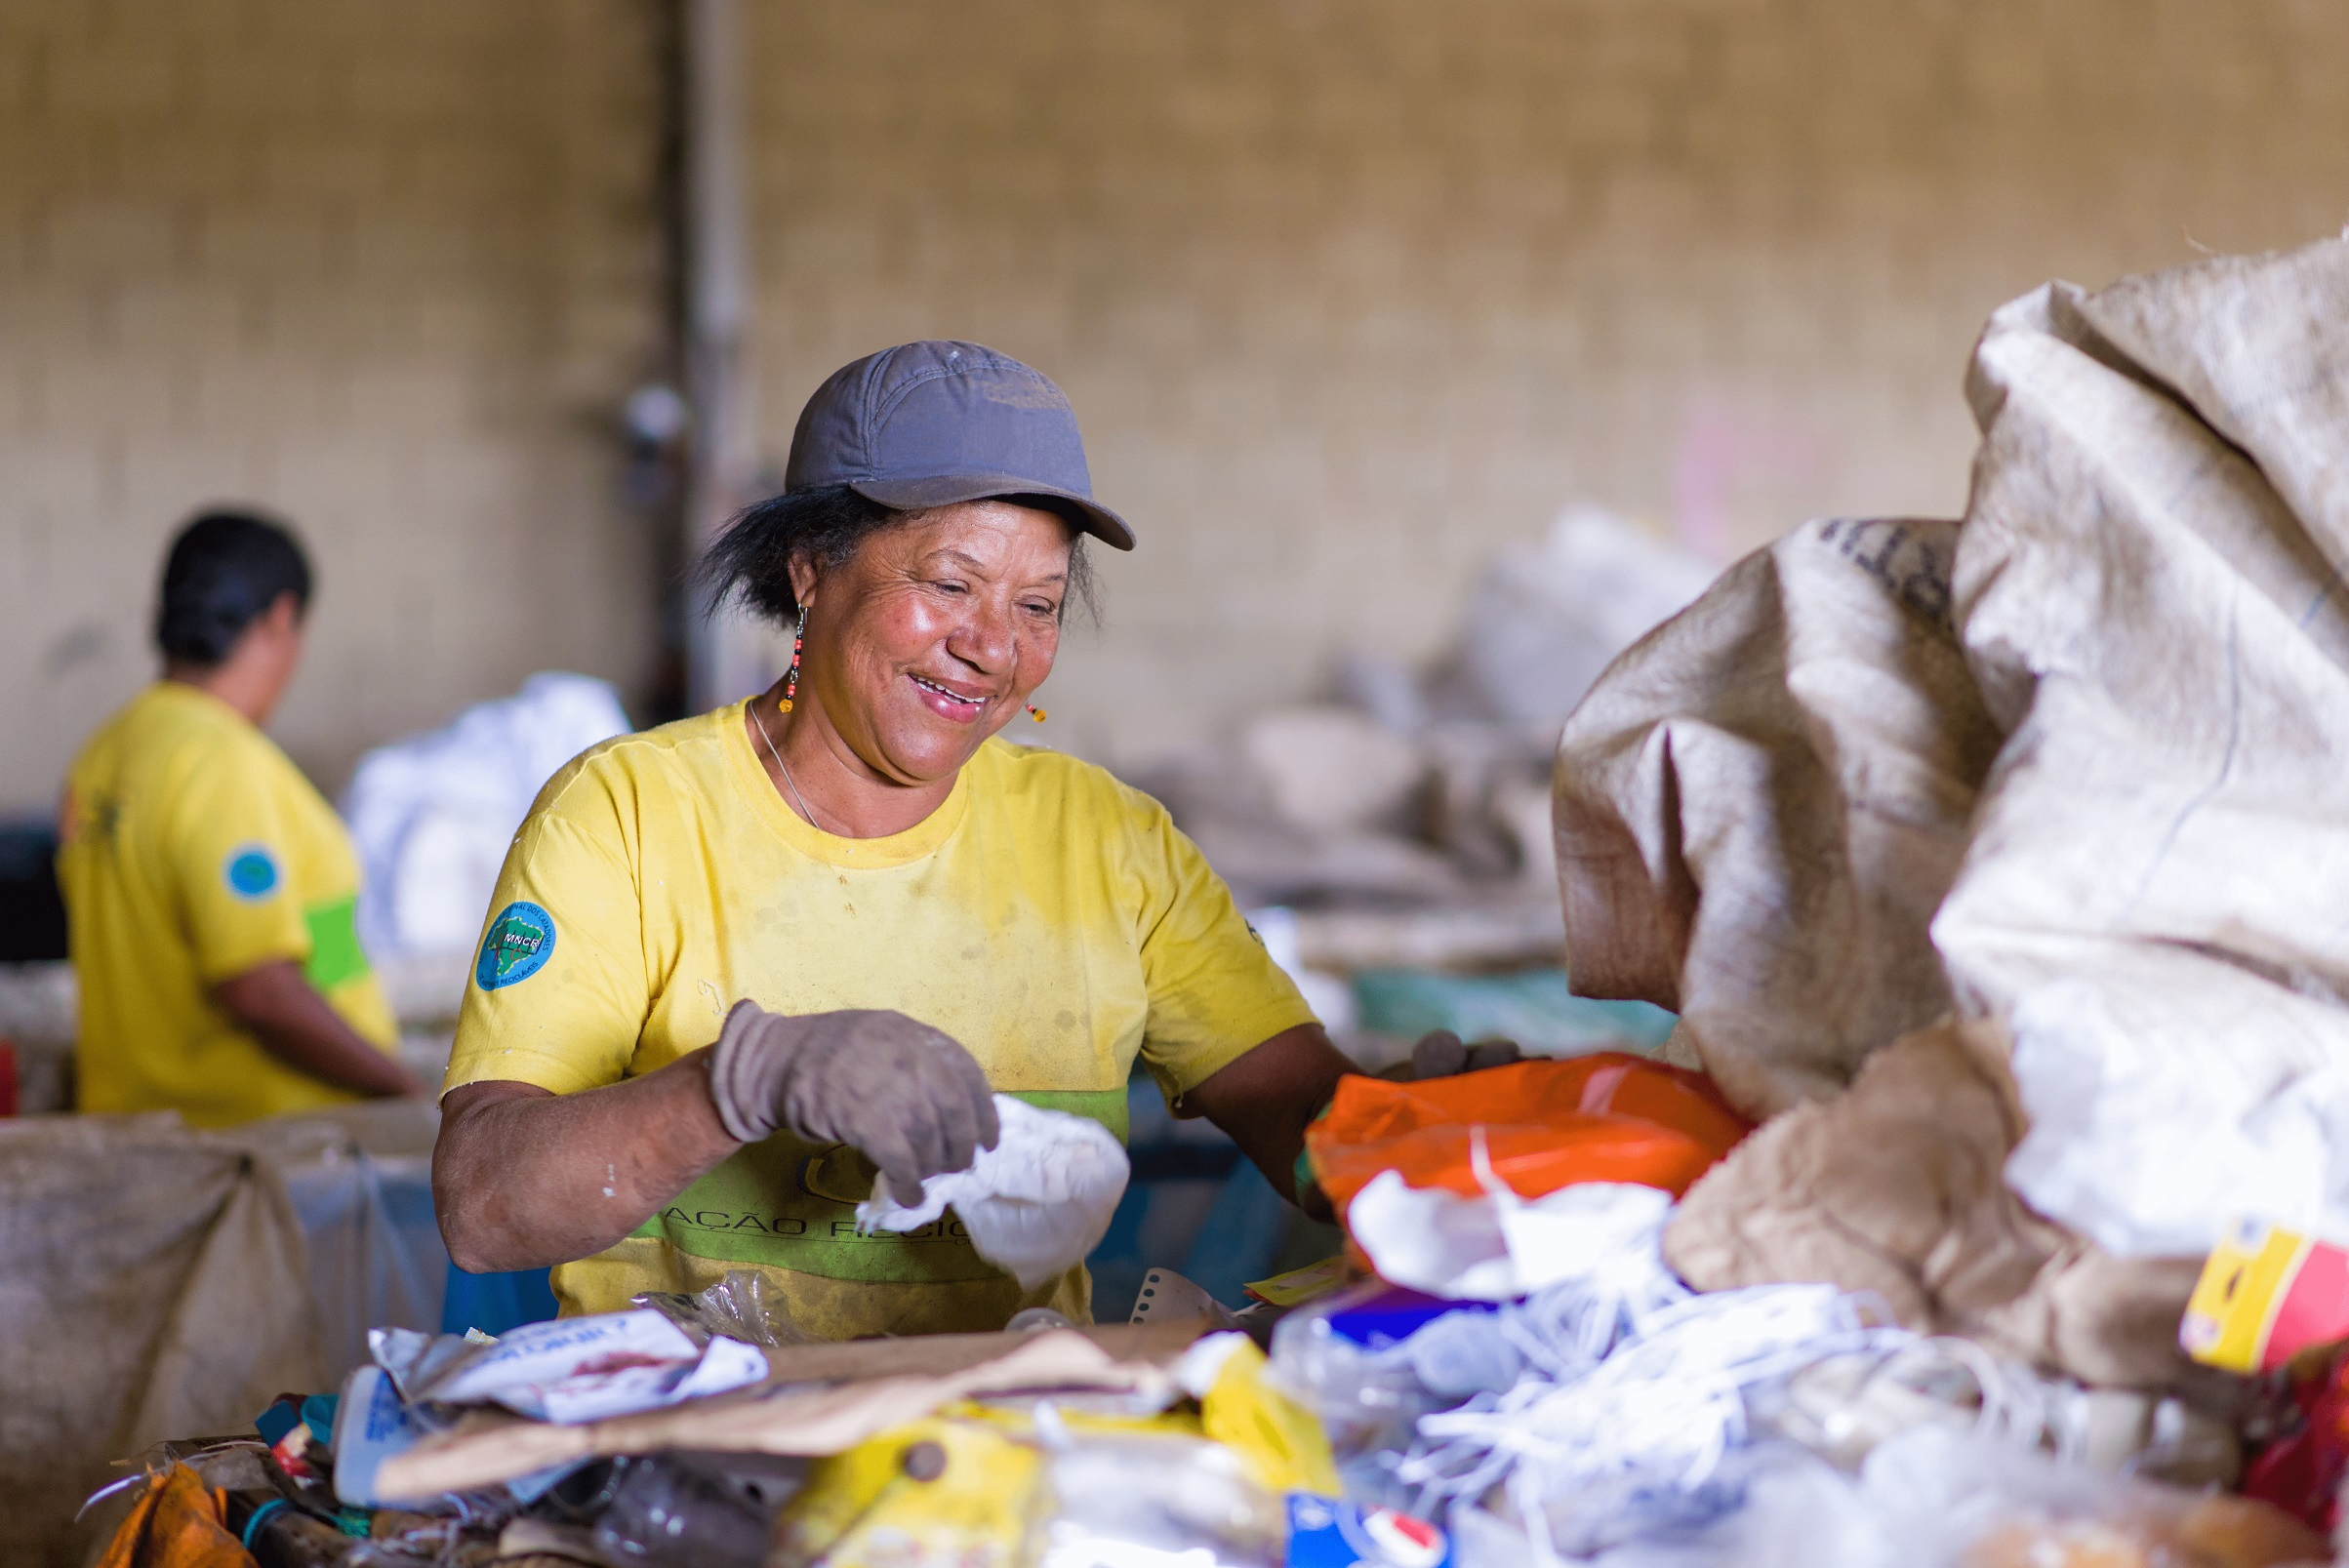 Partnering with waste pickers for inclusive recycling